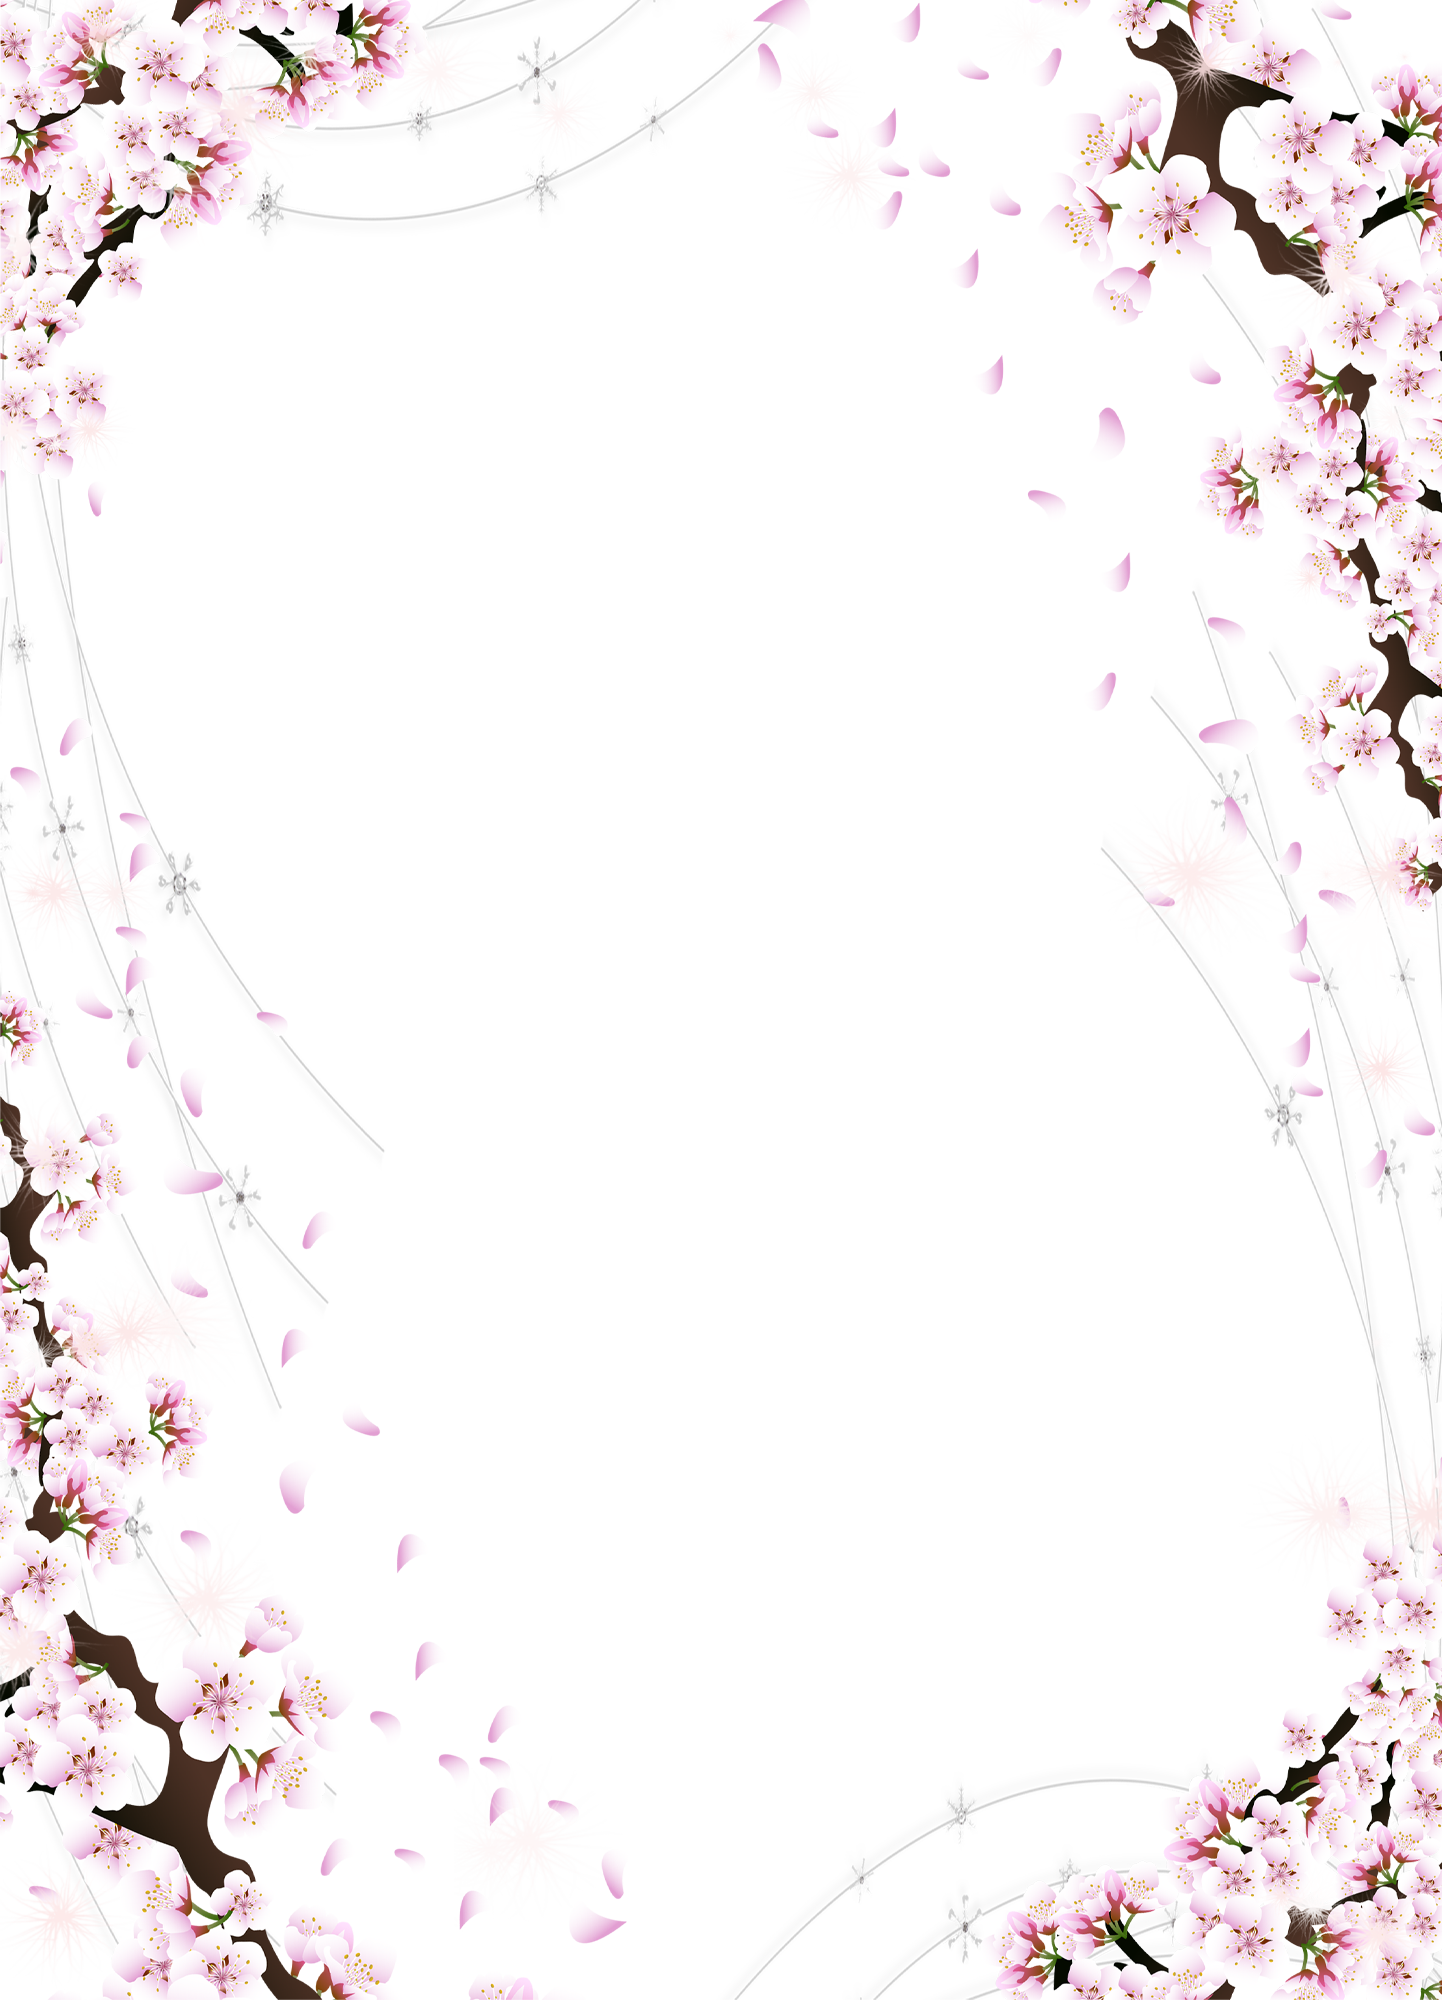 Cherry blossom border png. Beautiful transparent photo frame